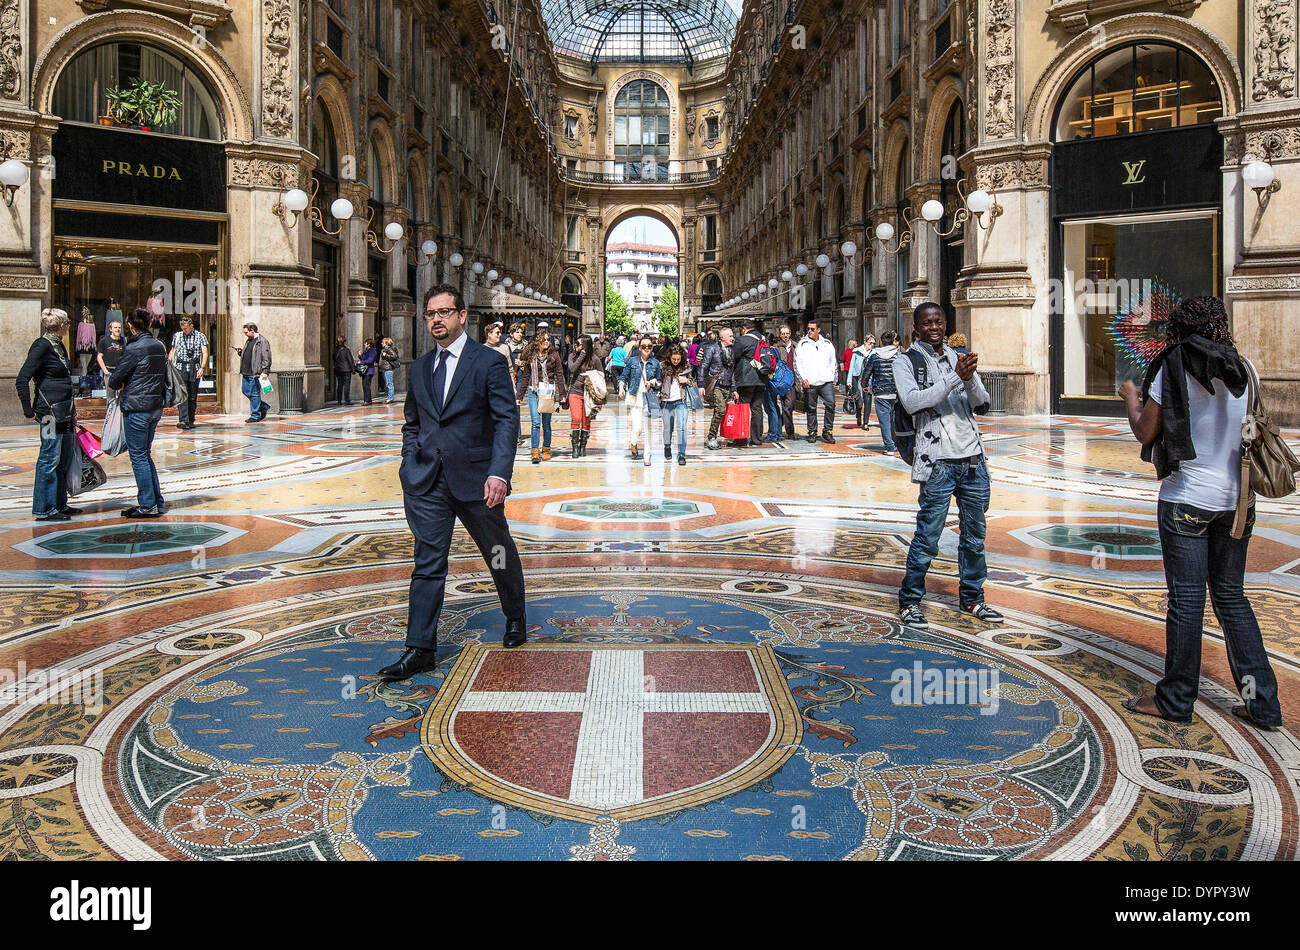 Milan, Italy. 23rd Apr, 2014. people in the Vittorio Emanuele gallery Credit:  Realy Easy Star/Alamy Live News - Stock Image